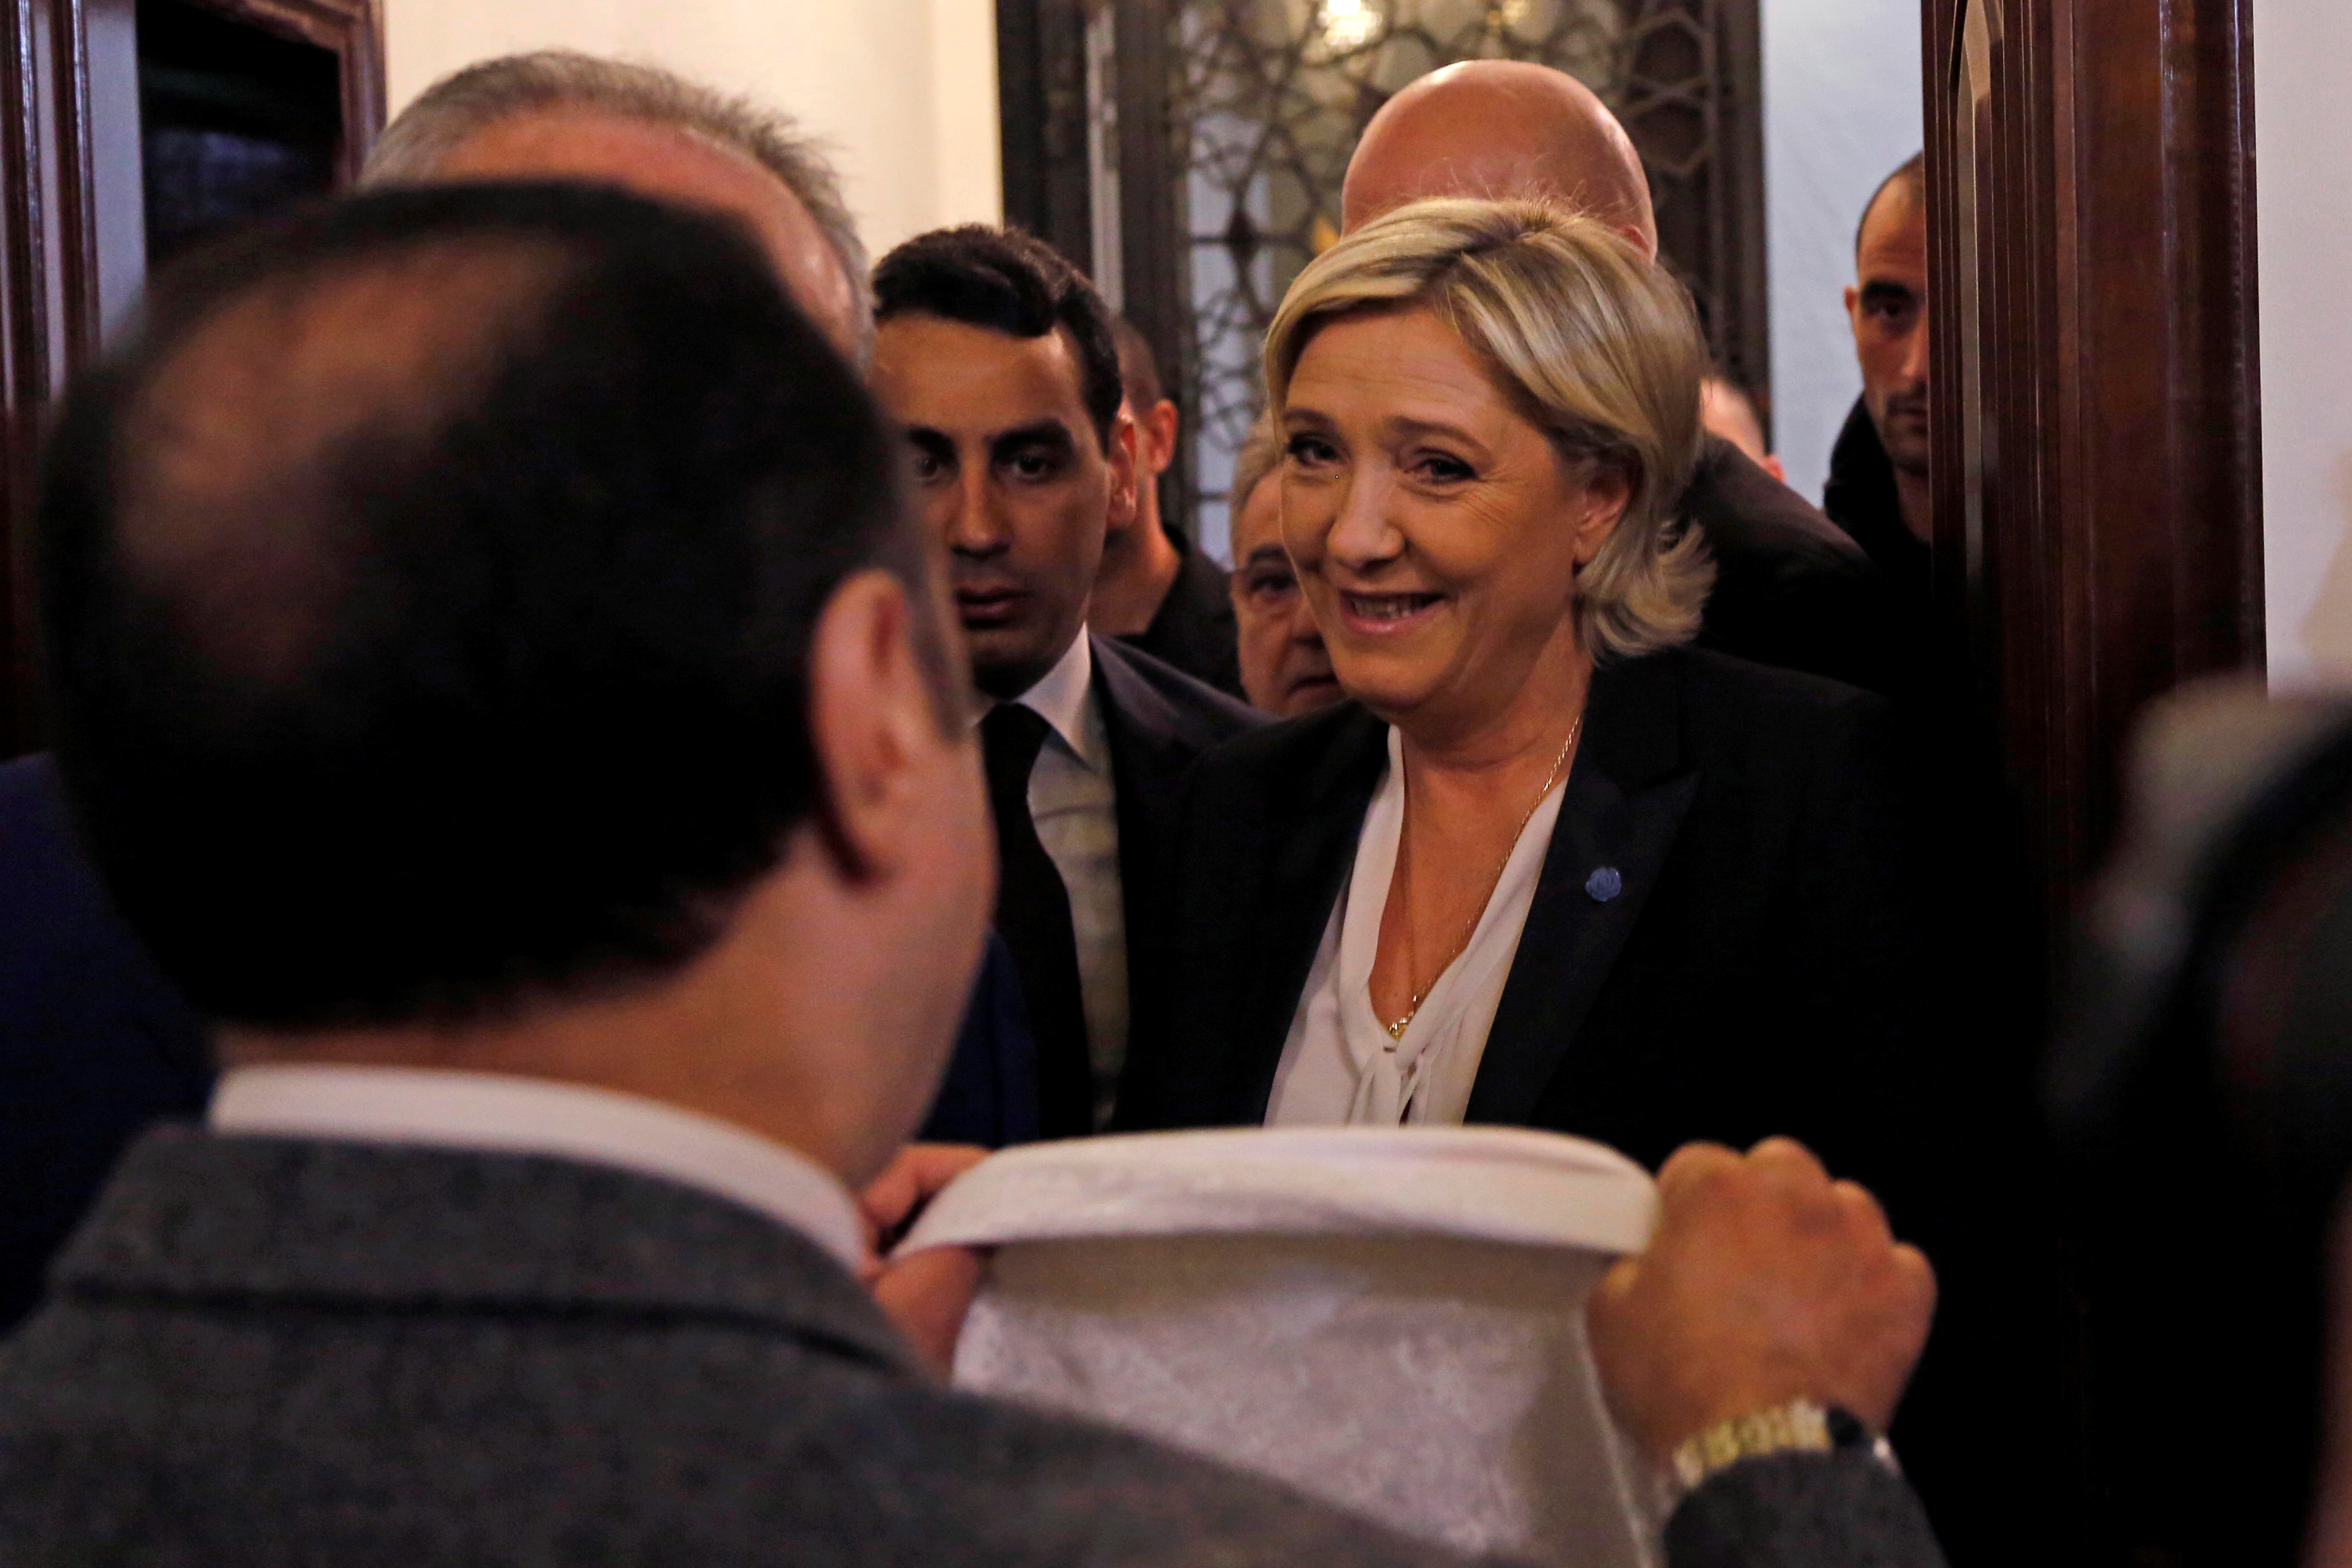 The leader of France's far-right Front National political party and presidential candidate, Marine Le Pen (C) refuses to wear headscarf before her meeting with Lebanon's Grand Mufti Sheikh Abdul Latif Derian, in Beirut, Lebanon on February 21, 2017.